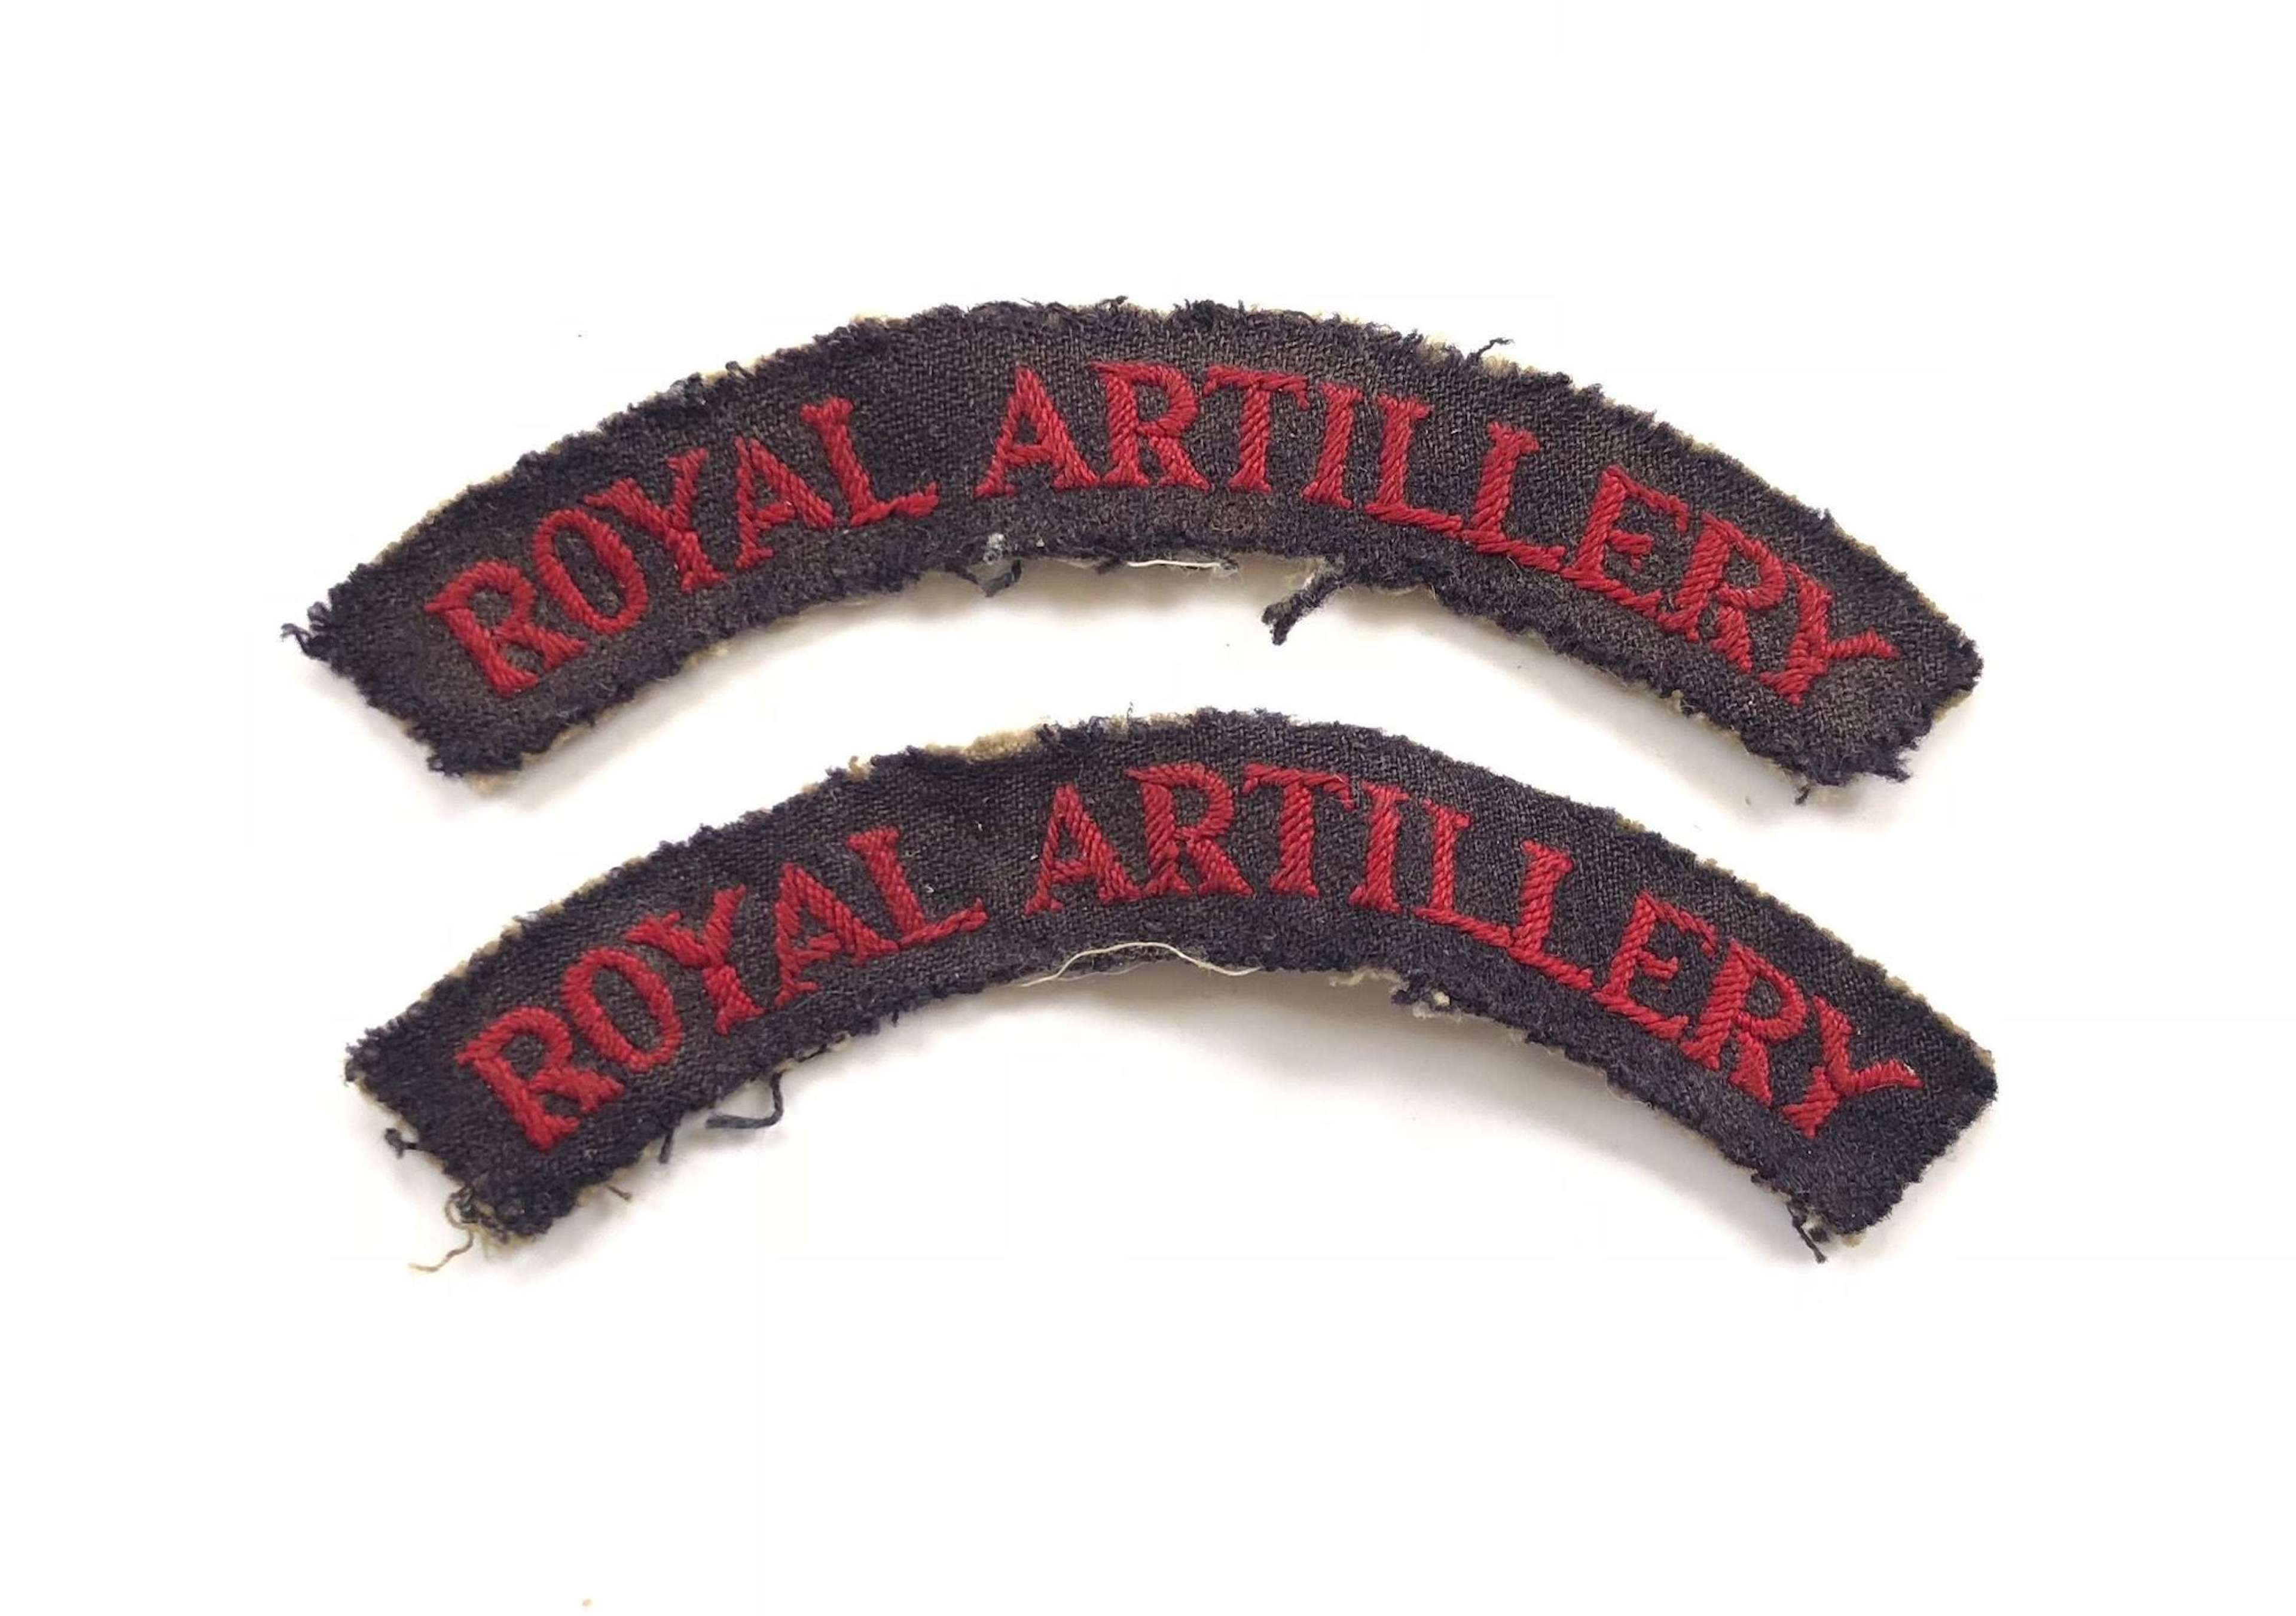 WW2 Period Royal Artillery Embroidered Shoulder Titles.